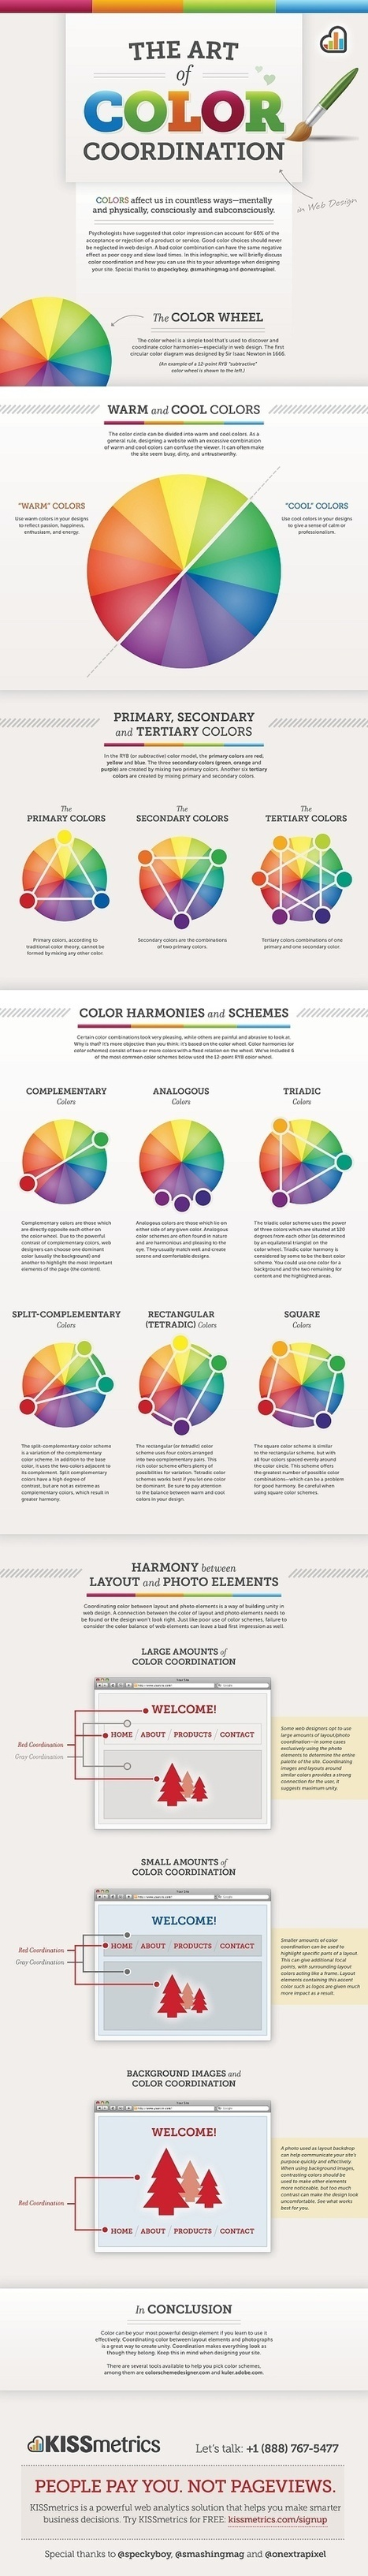 Color Is MASTER of Us All [Infographic] | Content Creation, Curation, Management | Scoop.it